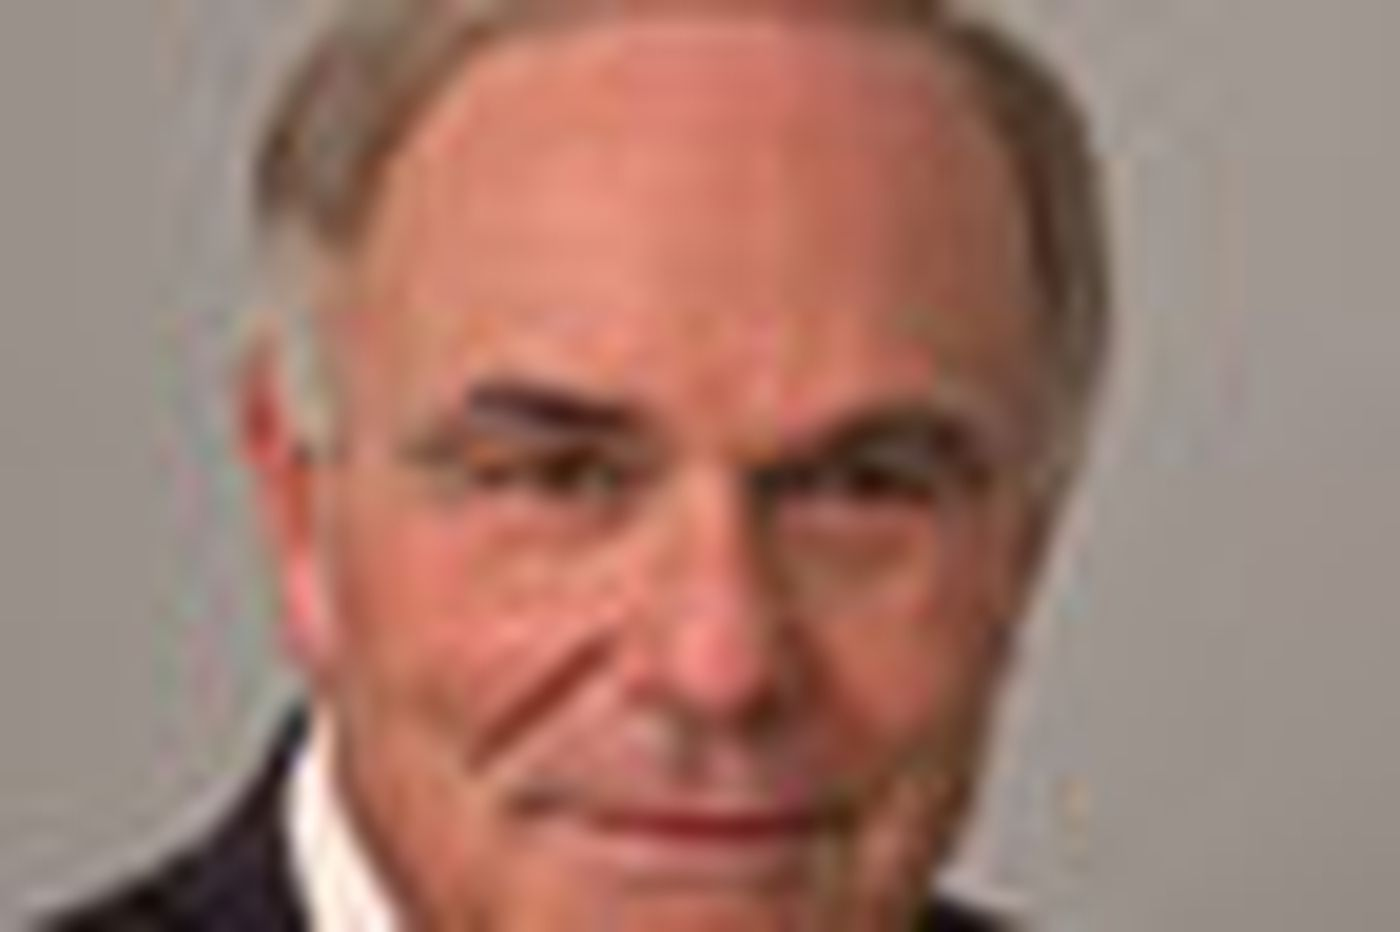 Rendell called support for Iran exile group 'the right thing'